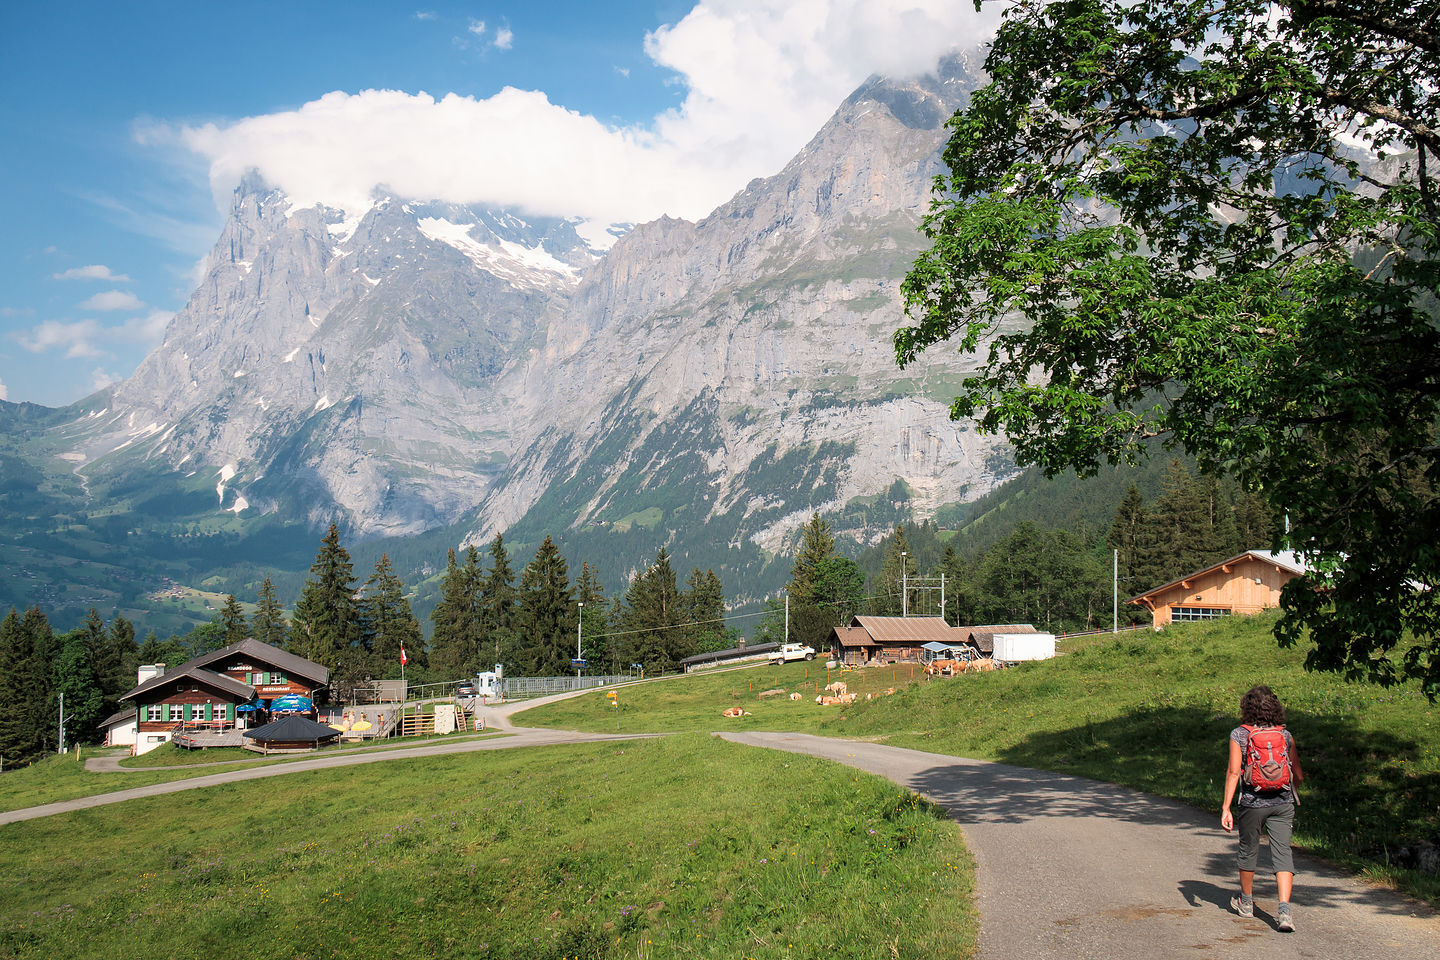 Hiking down to Grindelwald